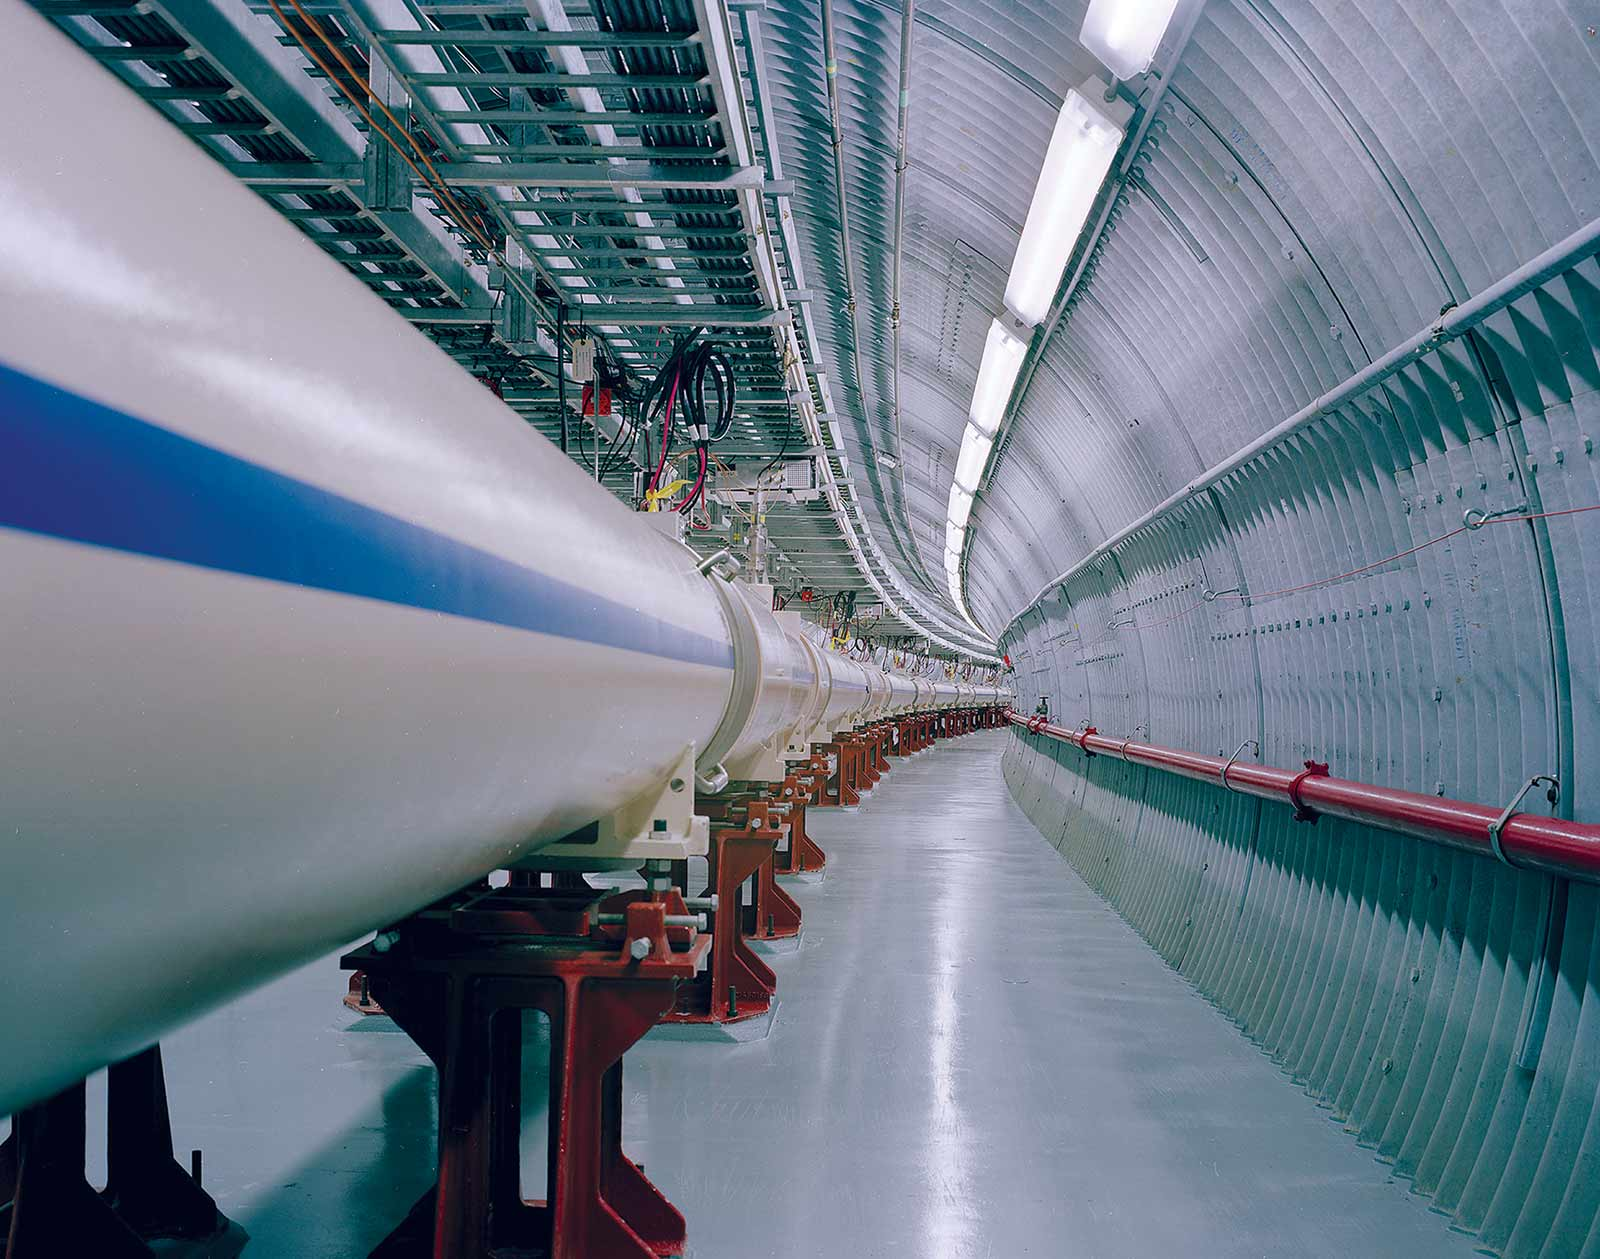 Made of intersecting rings of superconductor magnets, the RHIC is enclosed in a tunnel 2.4 miles in circumference.